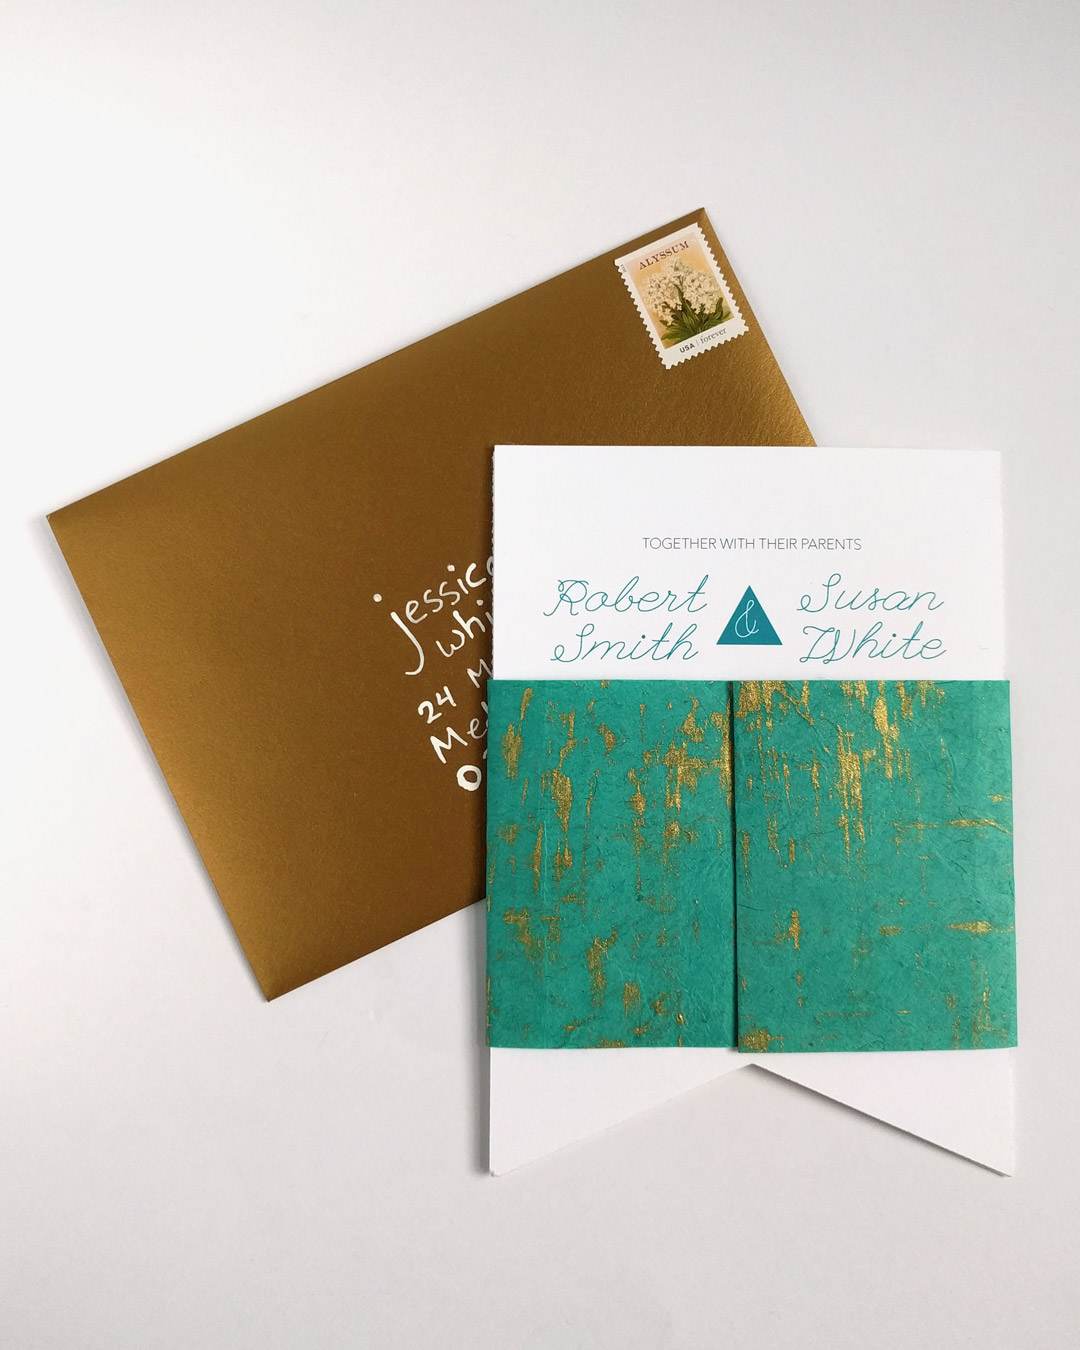 Custom wedding invitation with handmade paper belly band and gold envelope